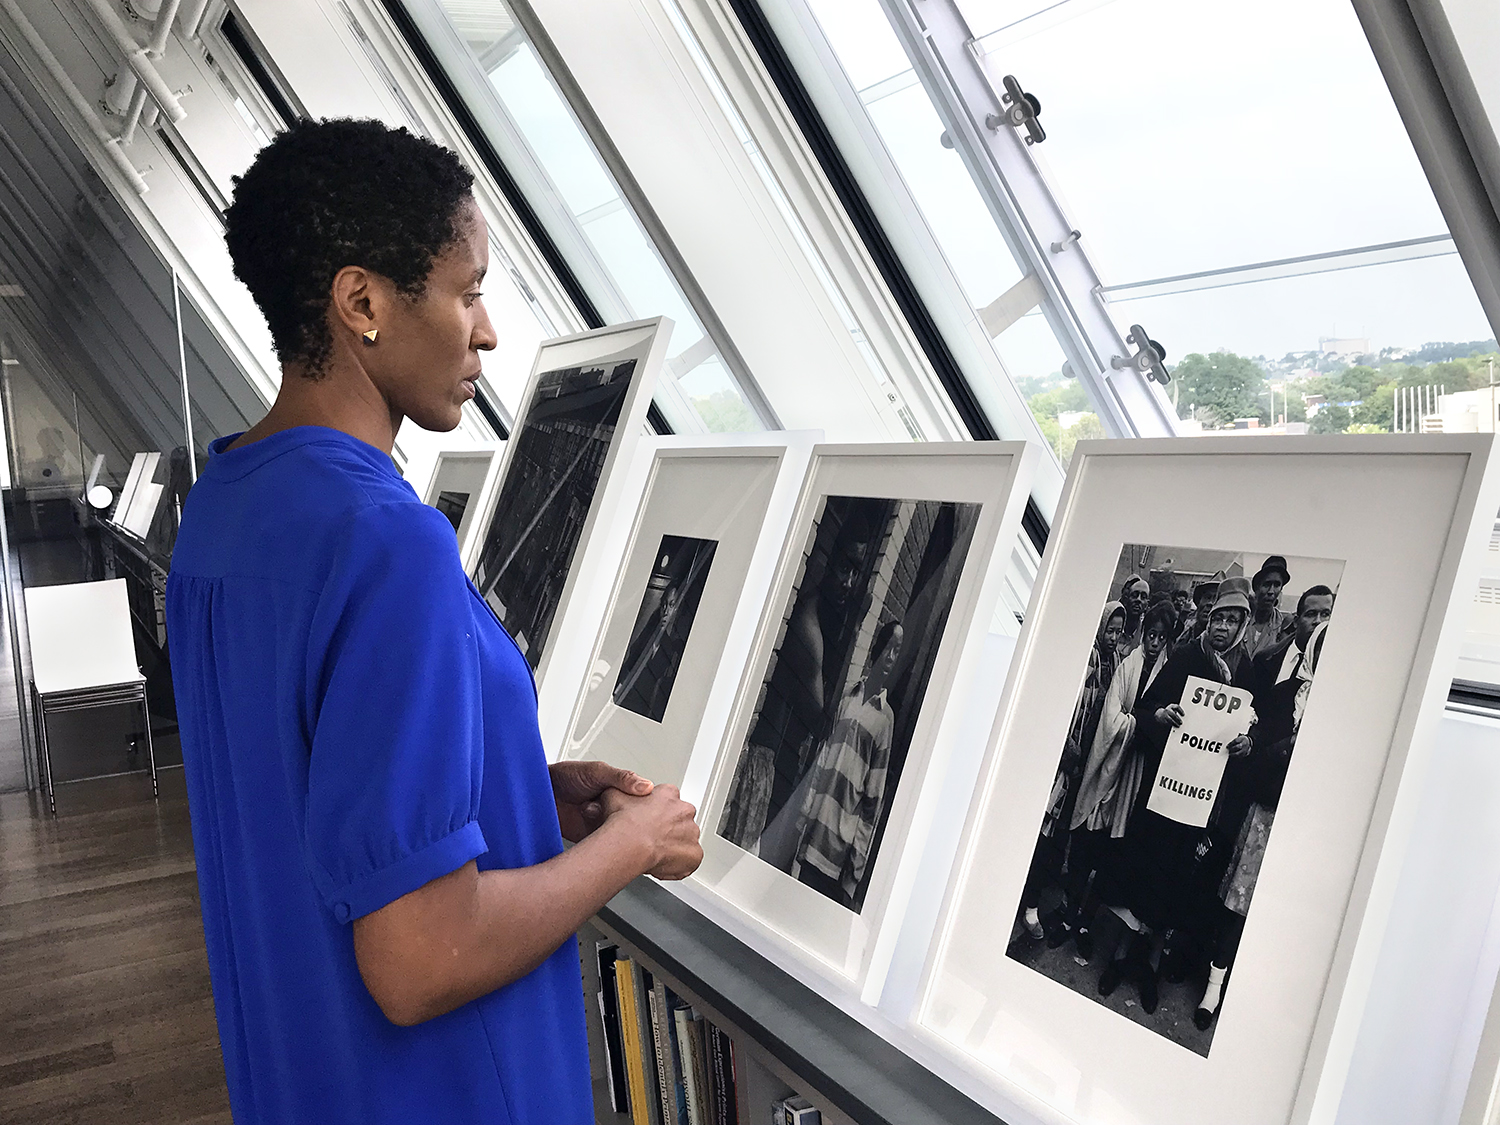 Makeda Best, the Harvard Art Museums' Richard L. Menschel Curator of Photography, views photographs, including Steve Schapiro's Stop Police Killings, Selma (1965), far right, in the Harvard Art Museums' Art Study Center, before they are installed in the exhibition Time is Now: Photography and Social Change in James Baldwin's America.